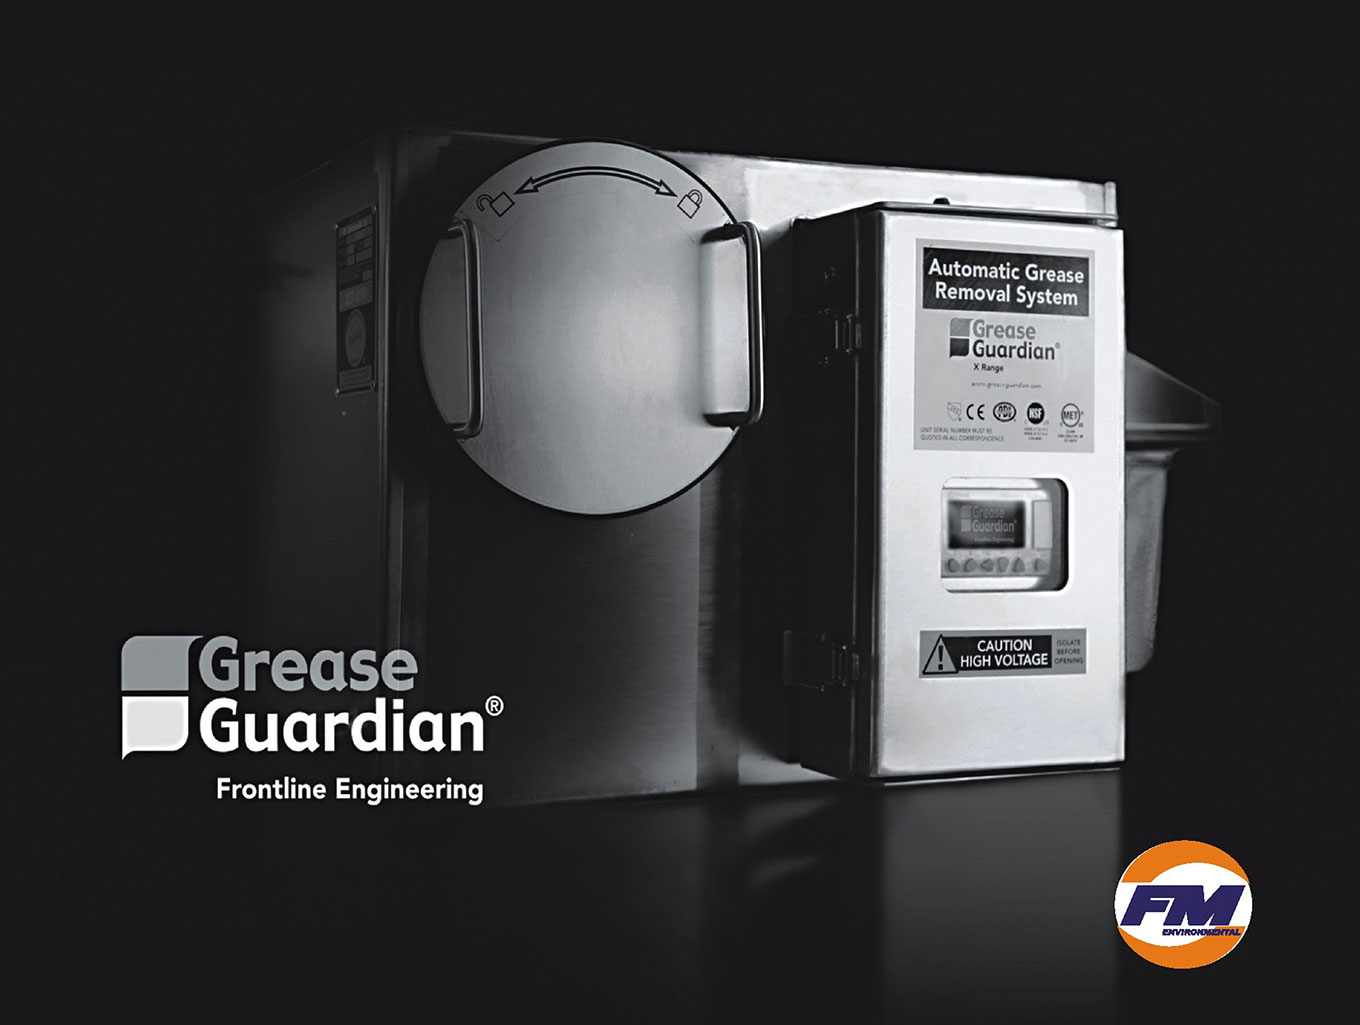 FM GREASE GUARDIAN